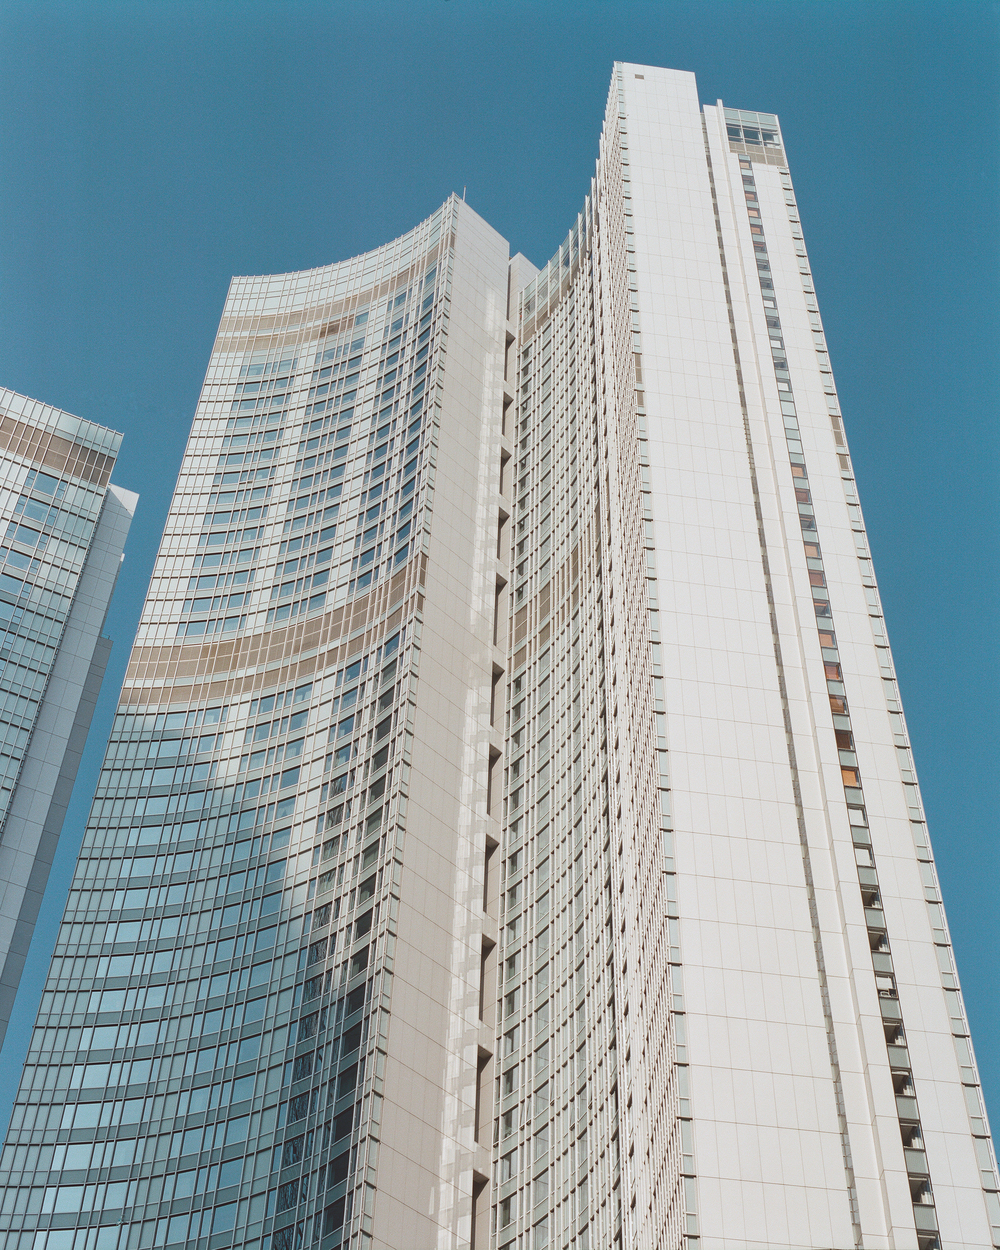 Four Seasons Hotel Hong Kong (2005)